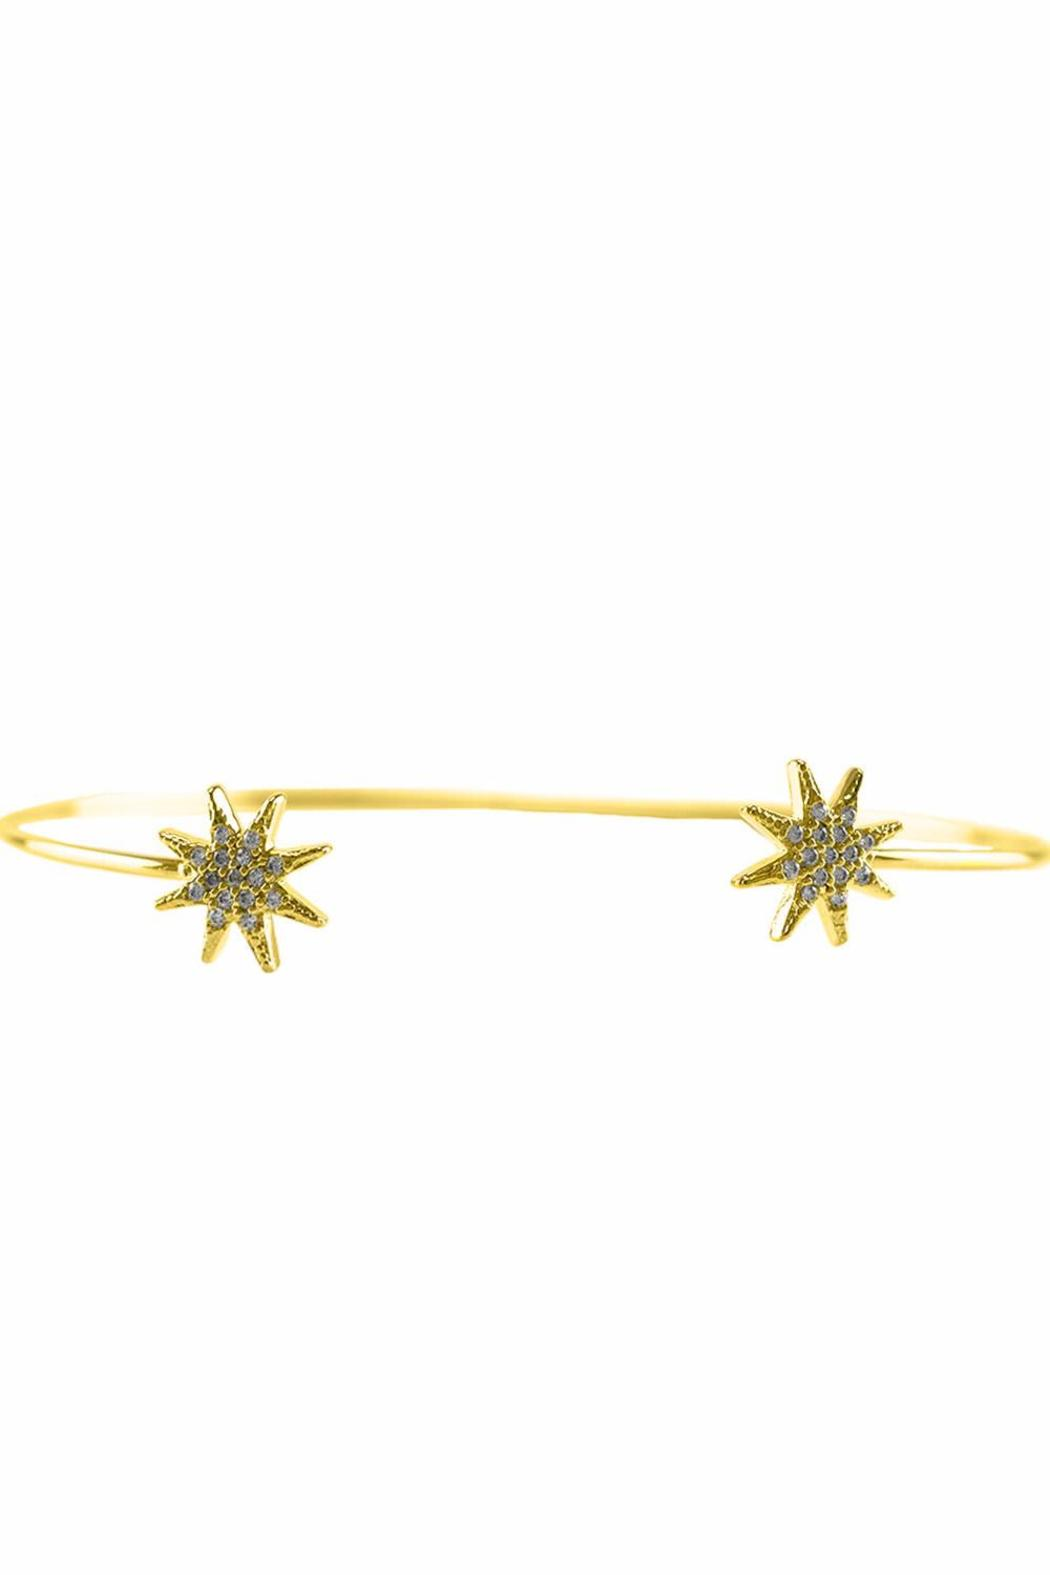 Baggis Accesorios Goldplated Star Bracelet - Main Image